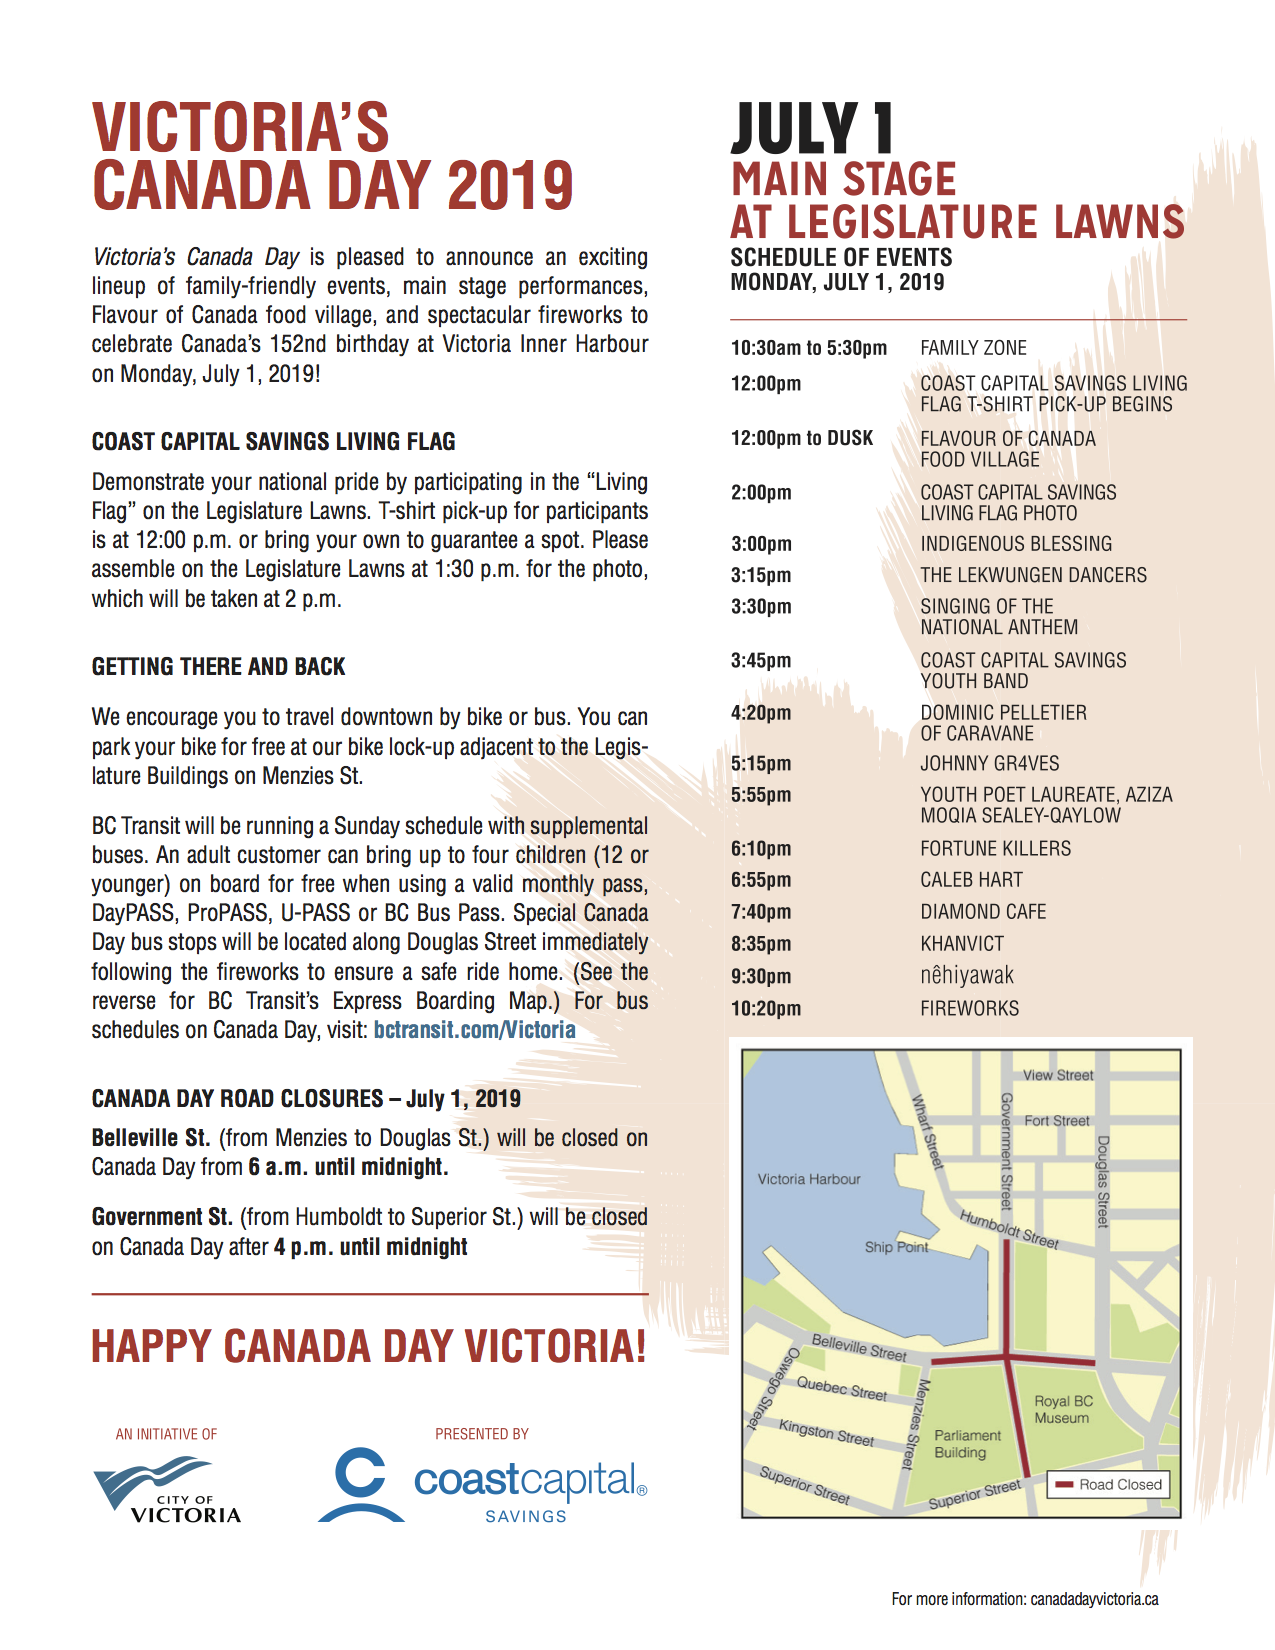 Victoria's Canada Day 2019, Schedule and Map.png